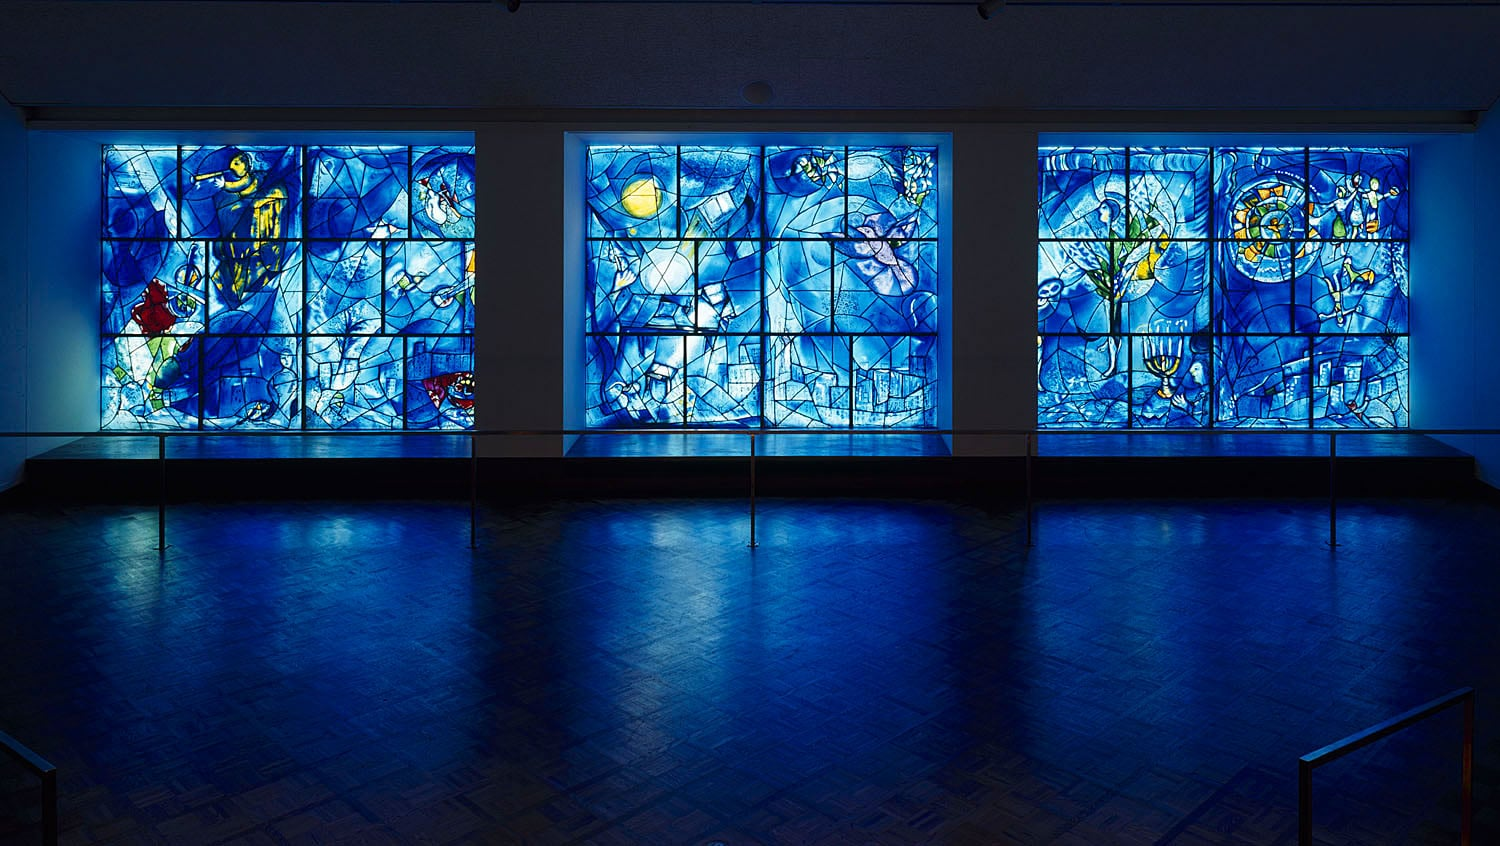 marc chagall 39 s america windows reopen to the public park. Black Bedroom Furniture Sets. Home Design Ideas